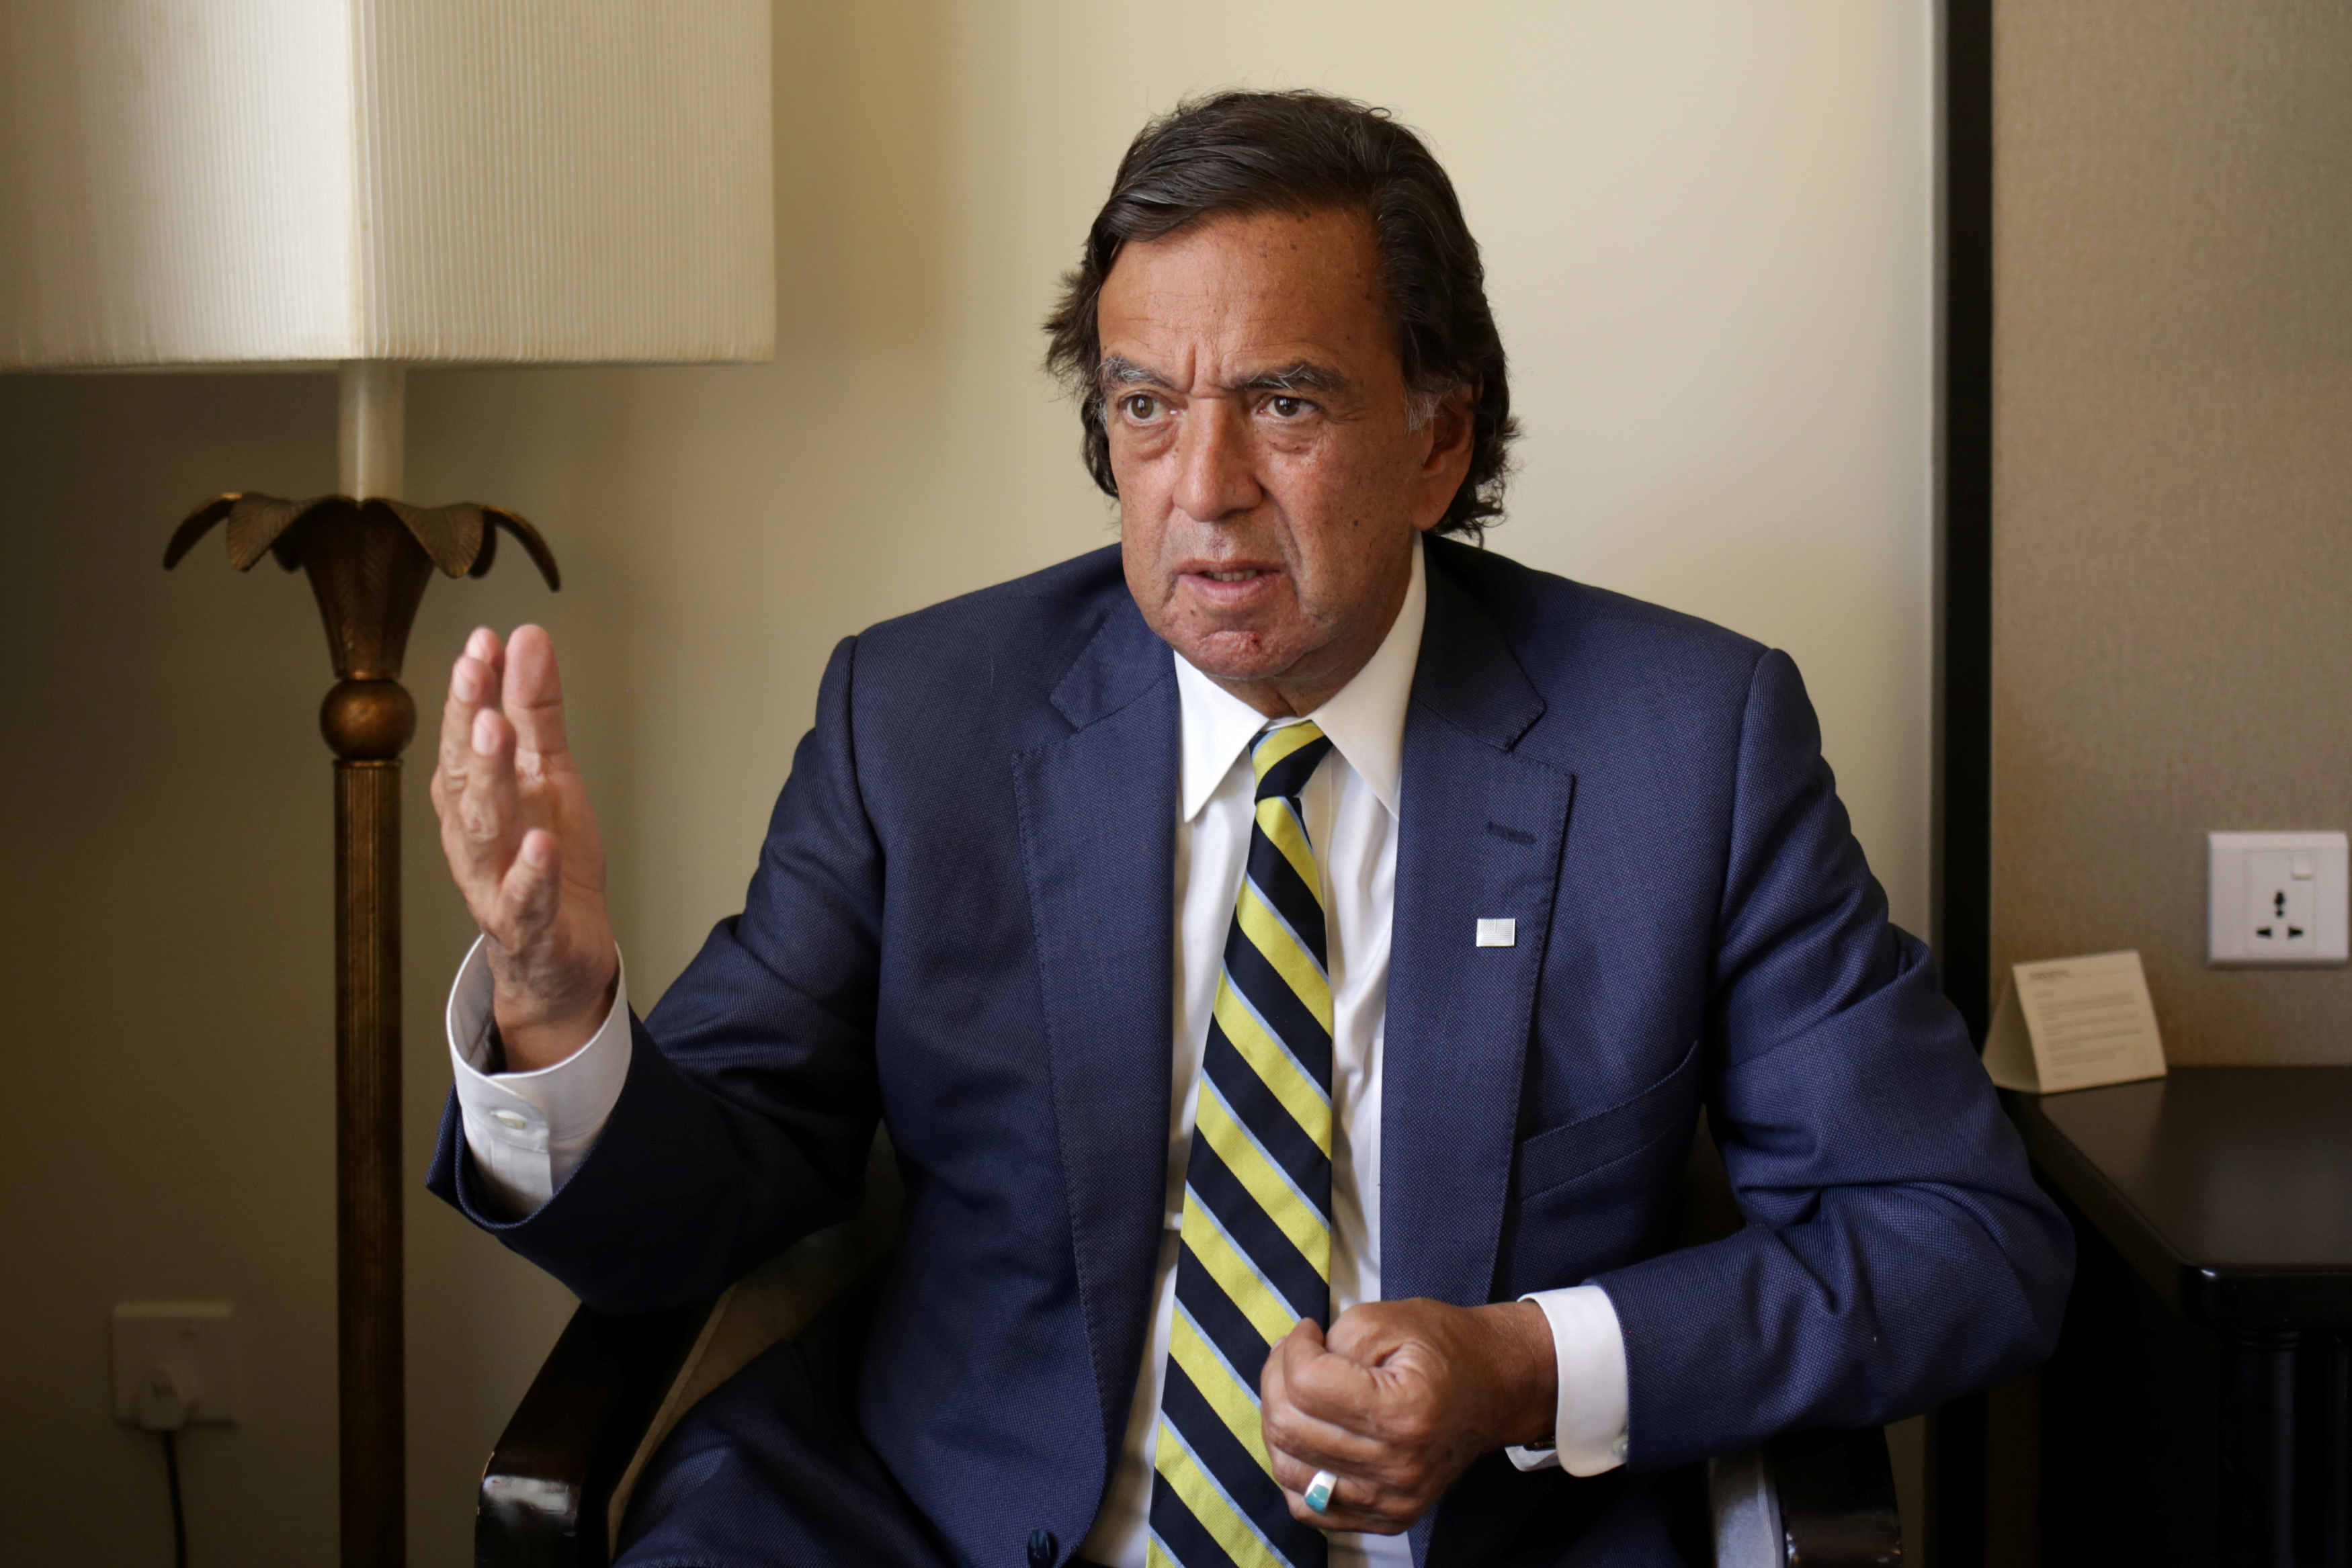 Former New Mexico governor Bill Richardson speaks during an interview in Yangon, Myanmar on Jan. 24, 2018.